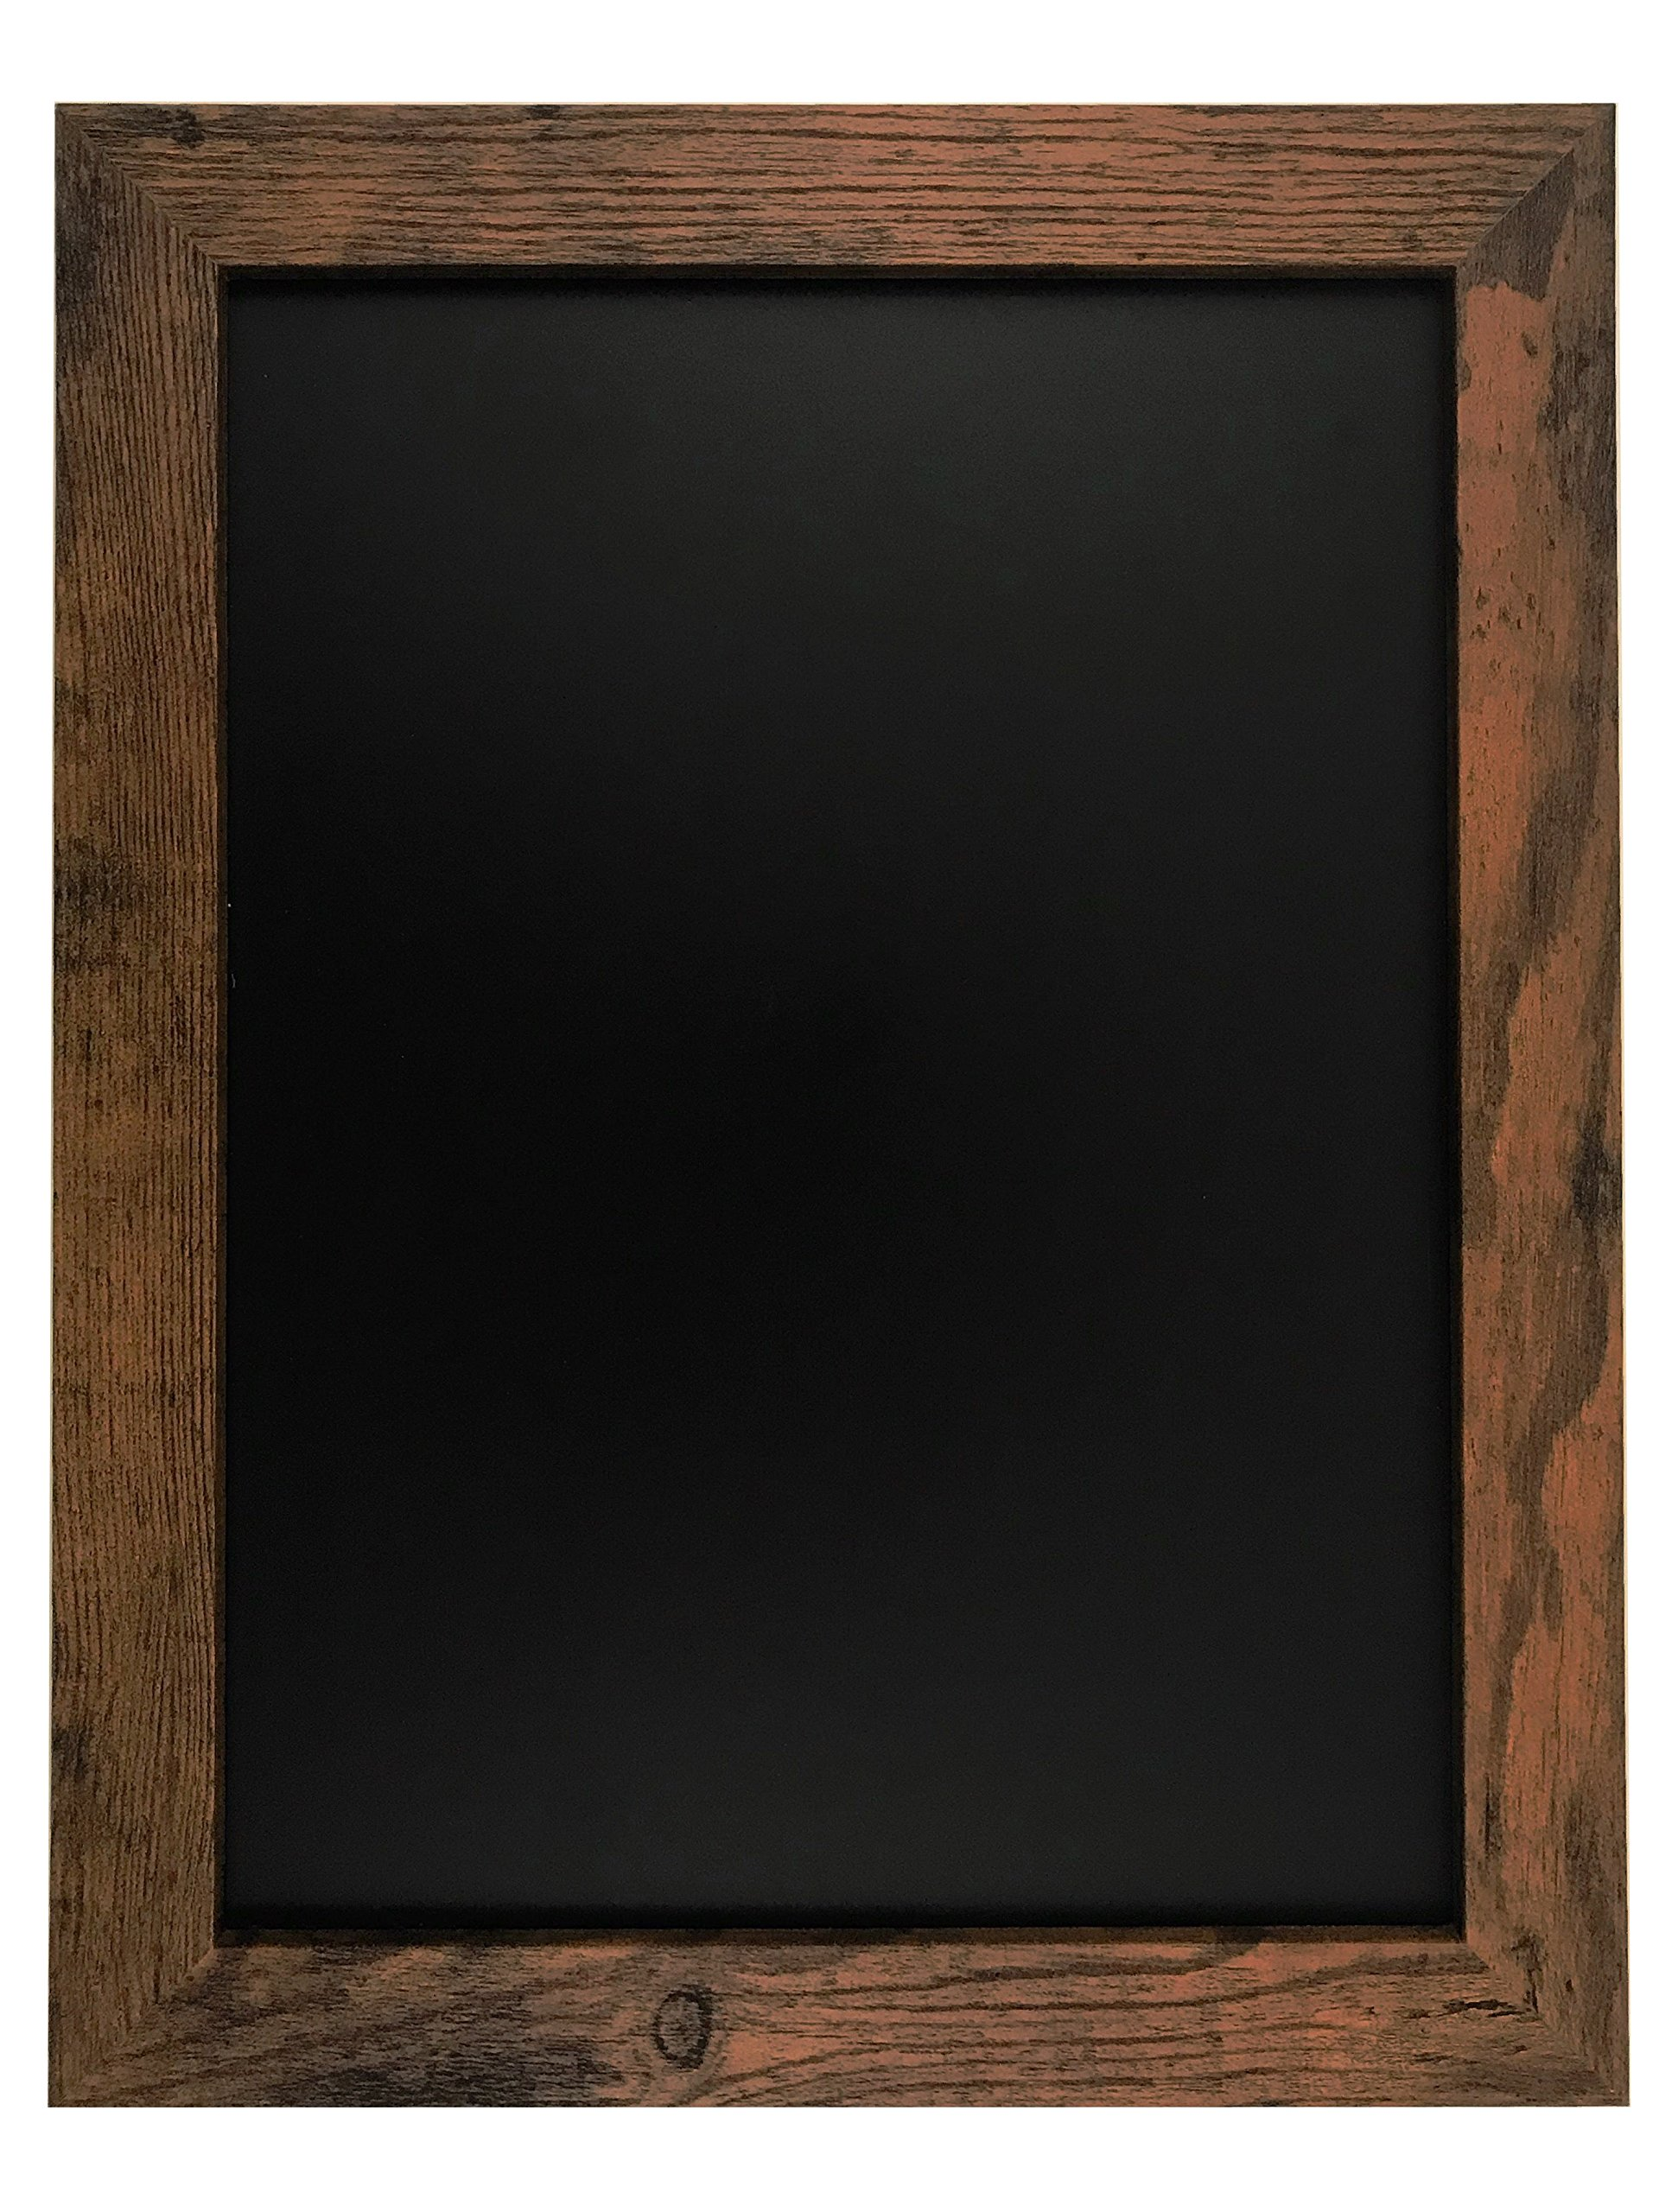 Rustic Wood Premium Surface Magnetic Chalk Board- 11''x14'' Perfect for Chalk Markers and Home Decor